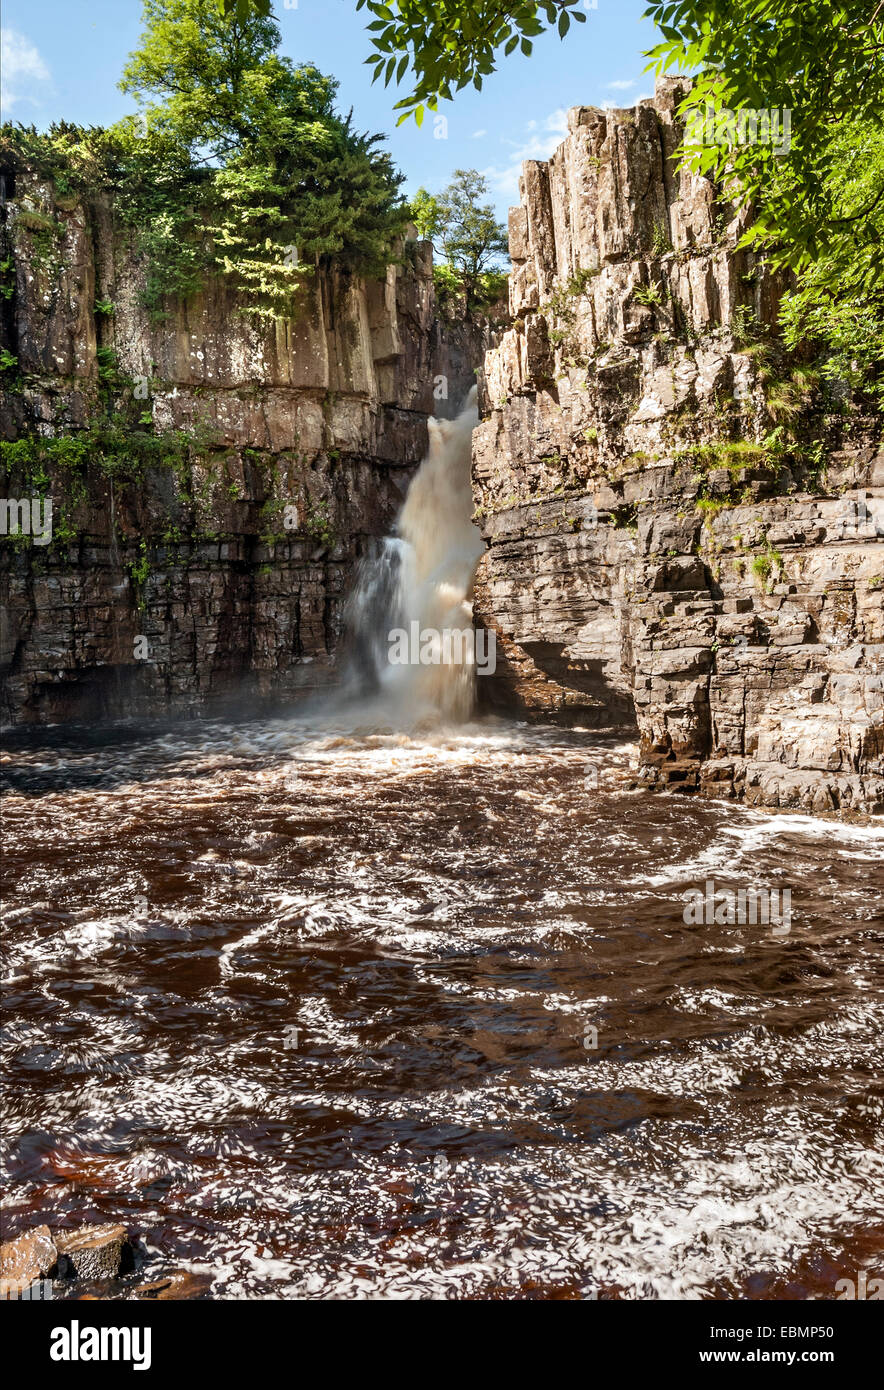 High Force, one of Englands famous Waterfall in Forest-in-Teesdale, North England - Stock Image